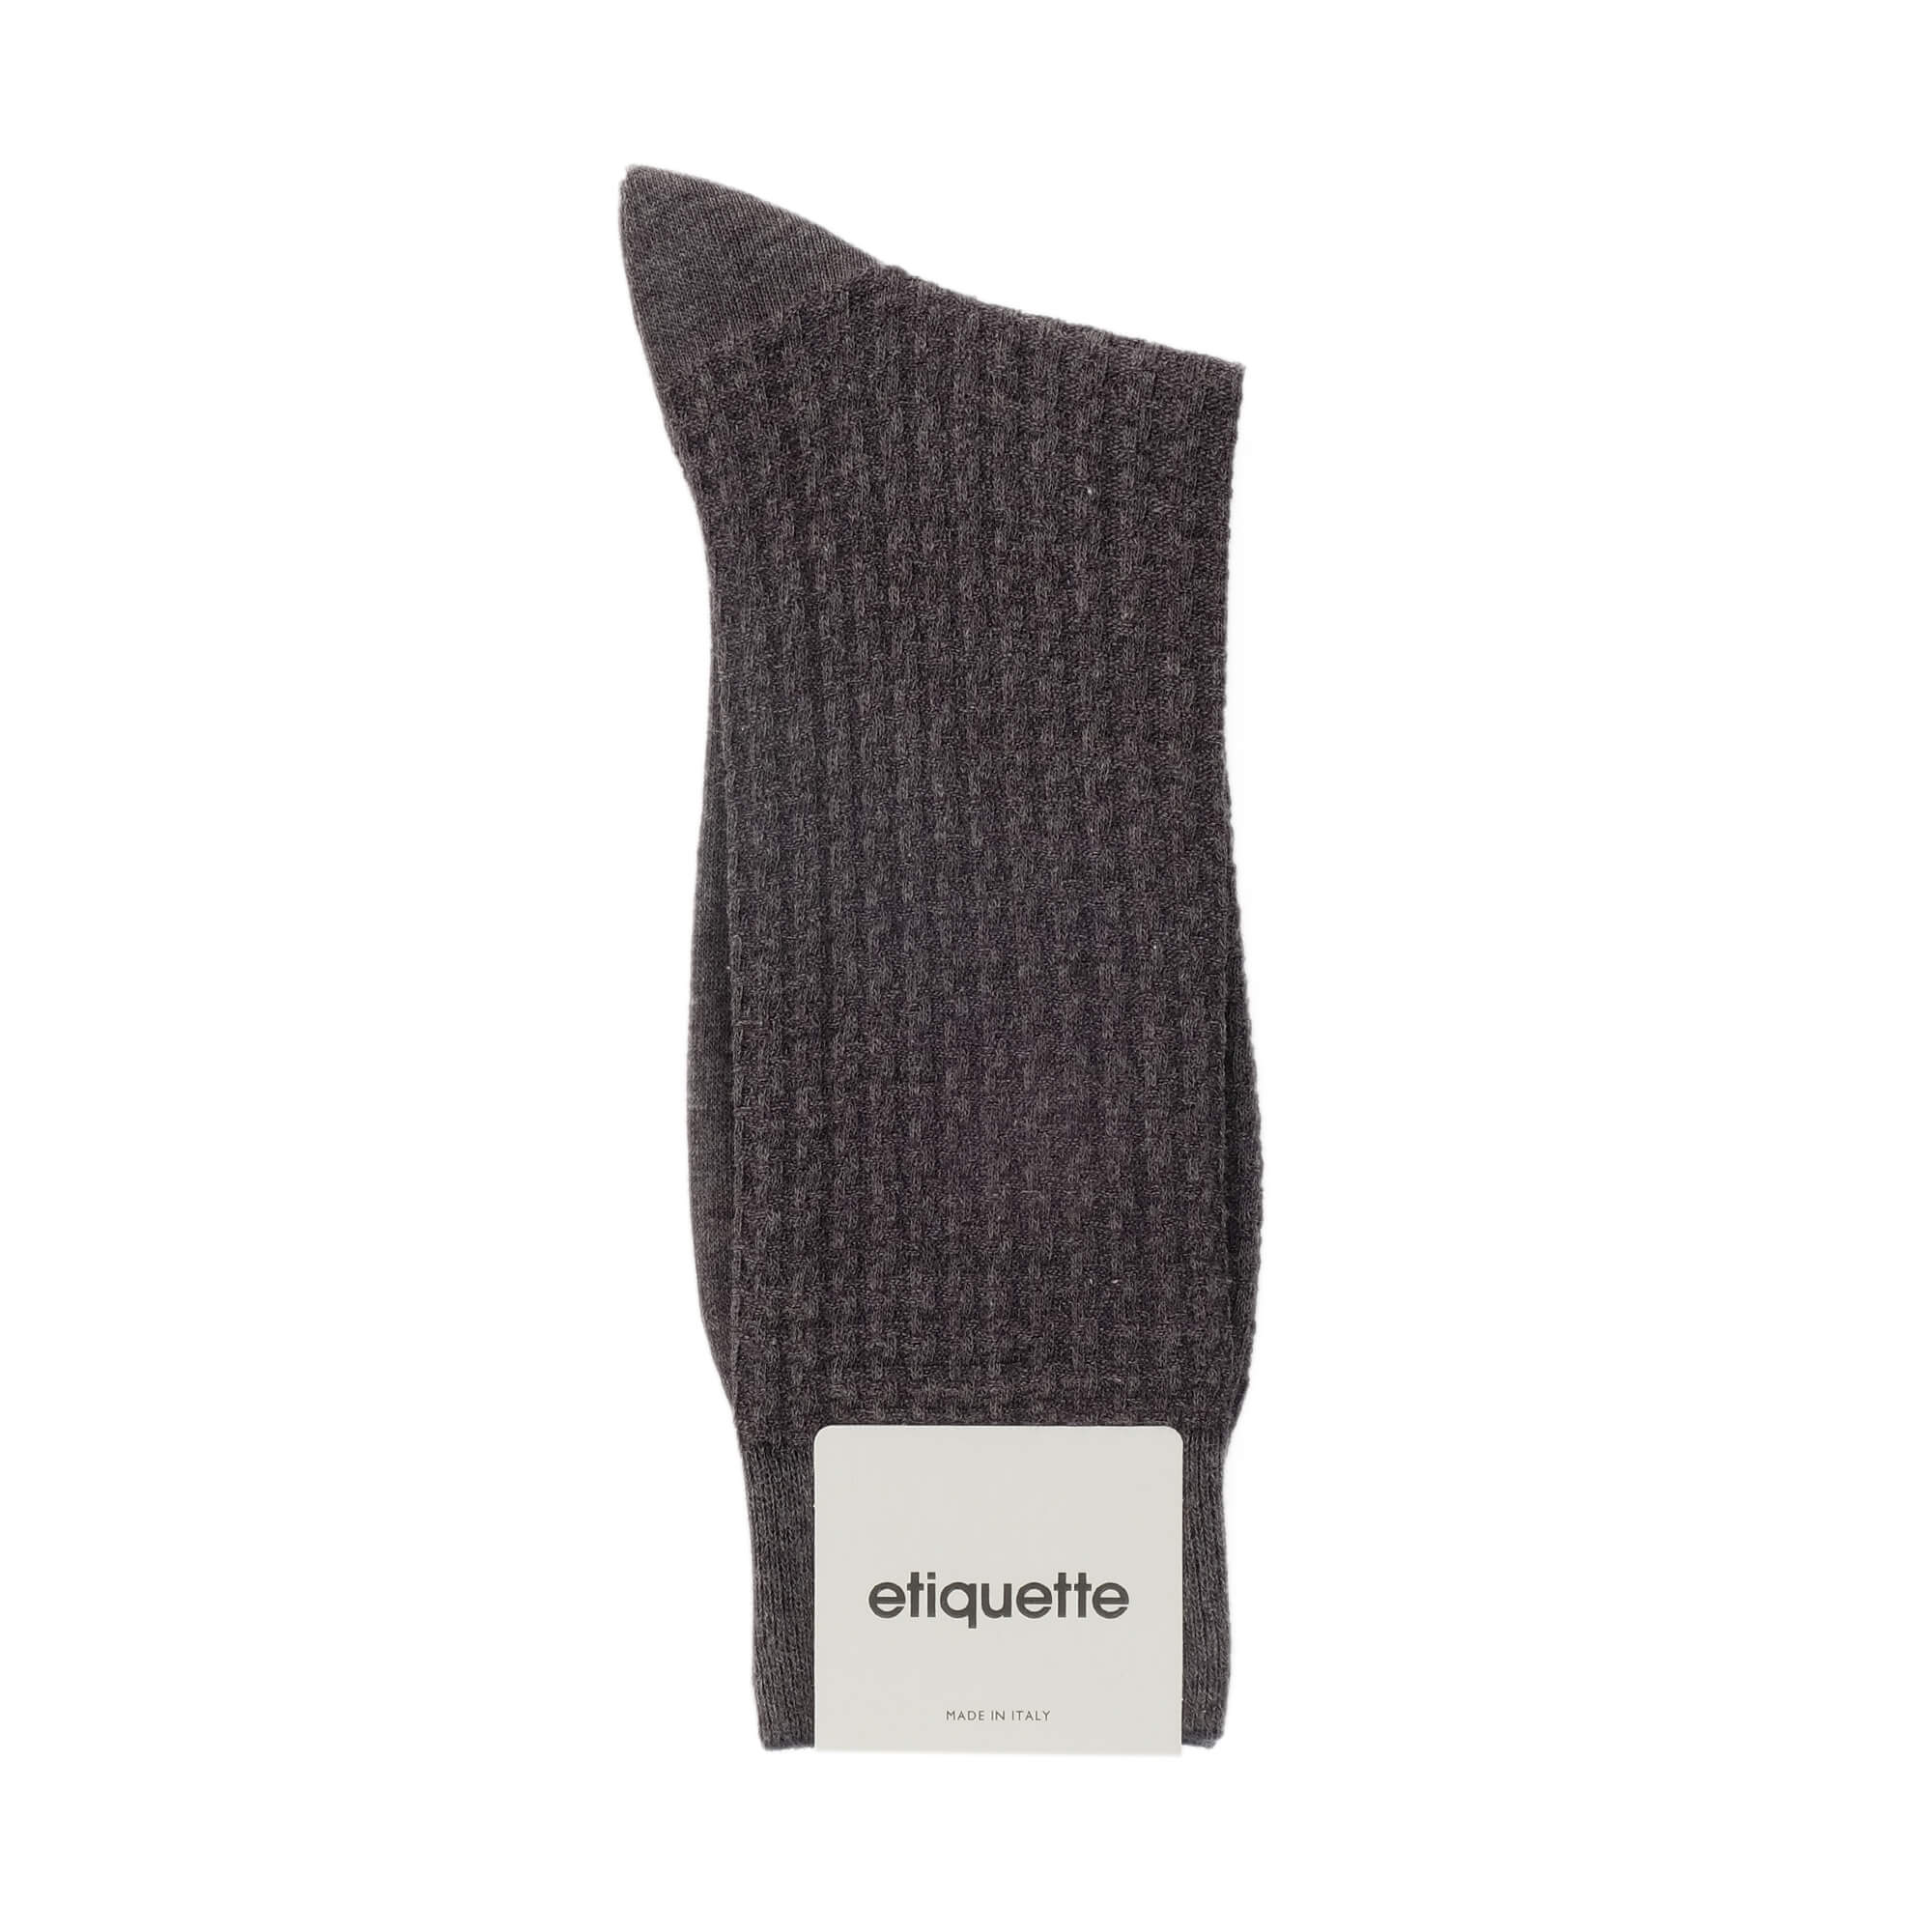 Mens Socks - Hounds Waffle Textured Men's Socks - Grey⎪Etiquette Clothiers